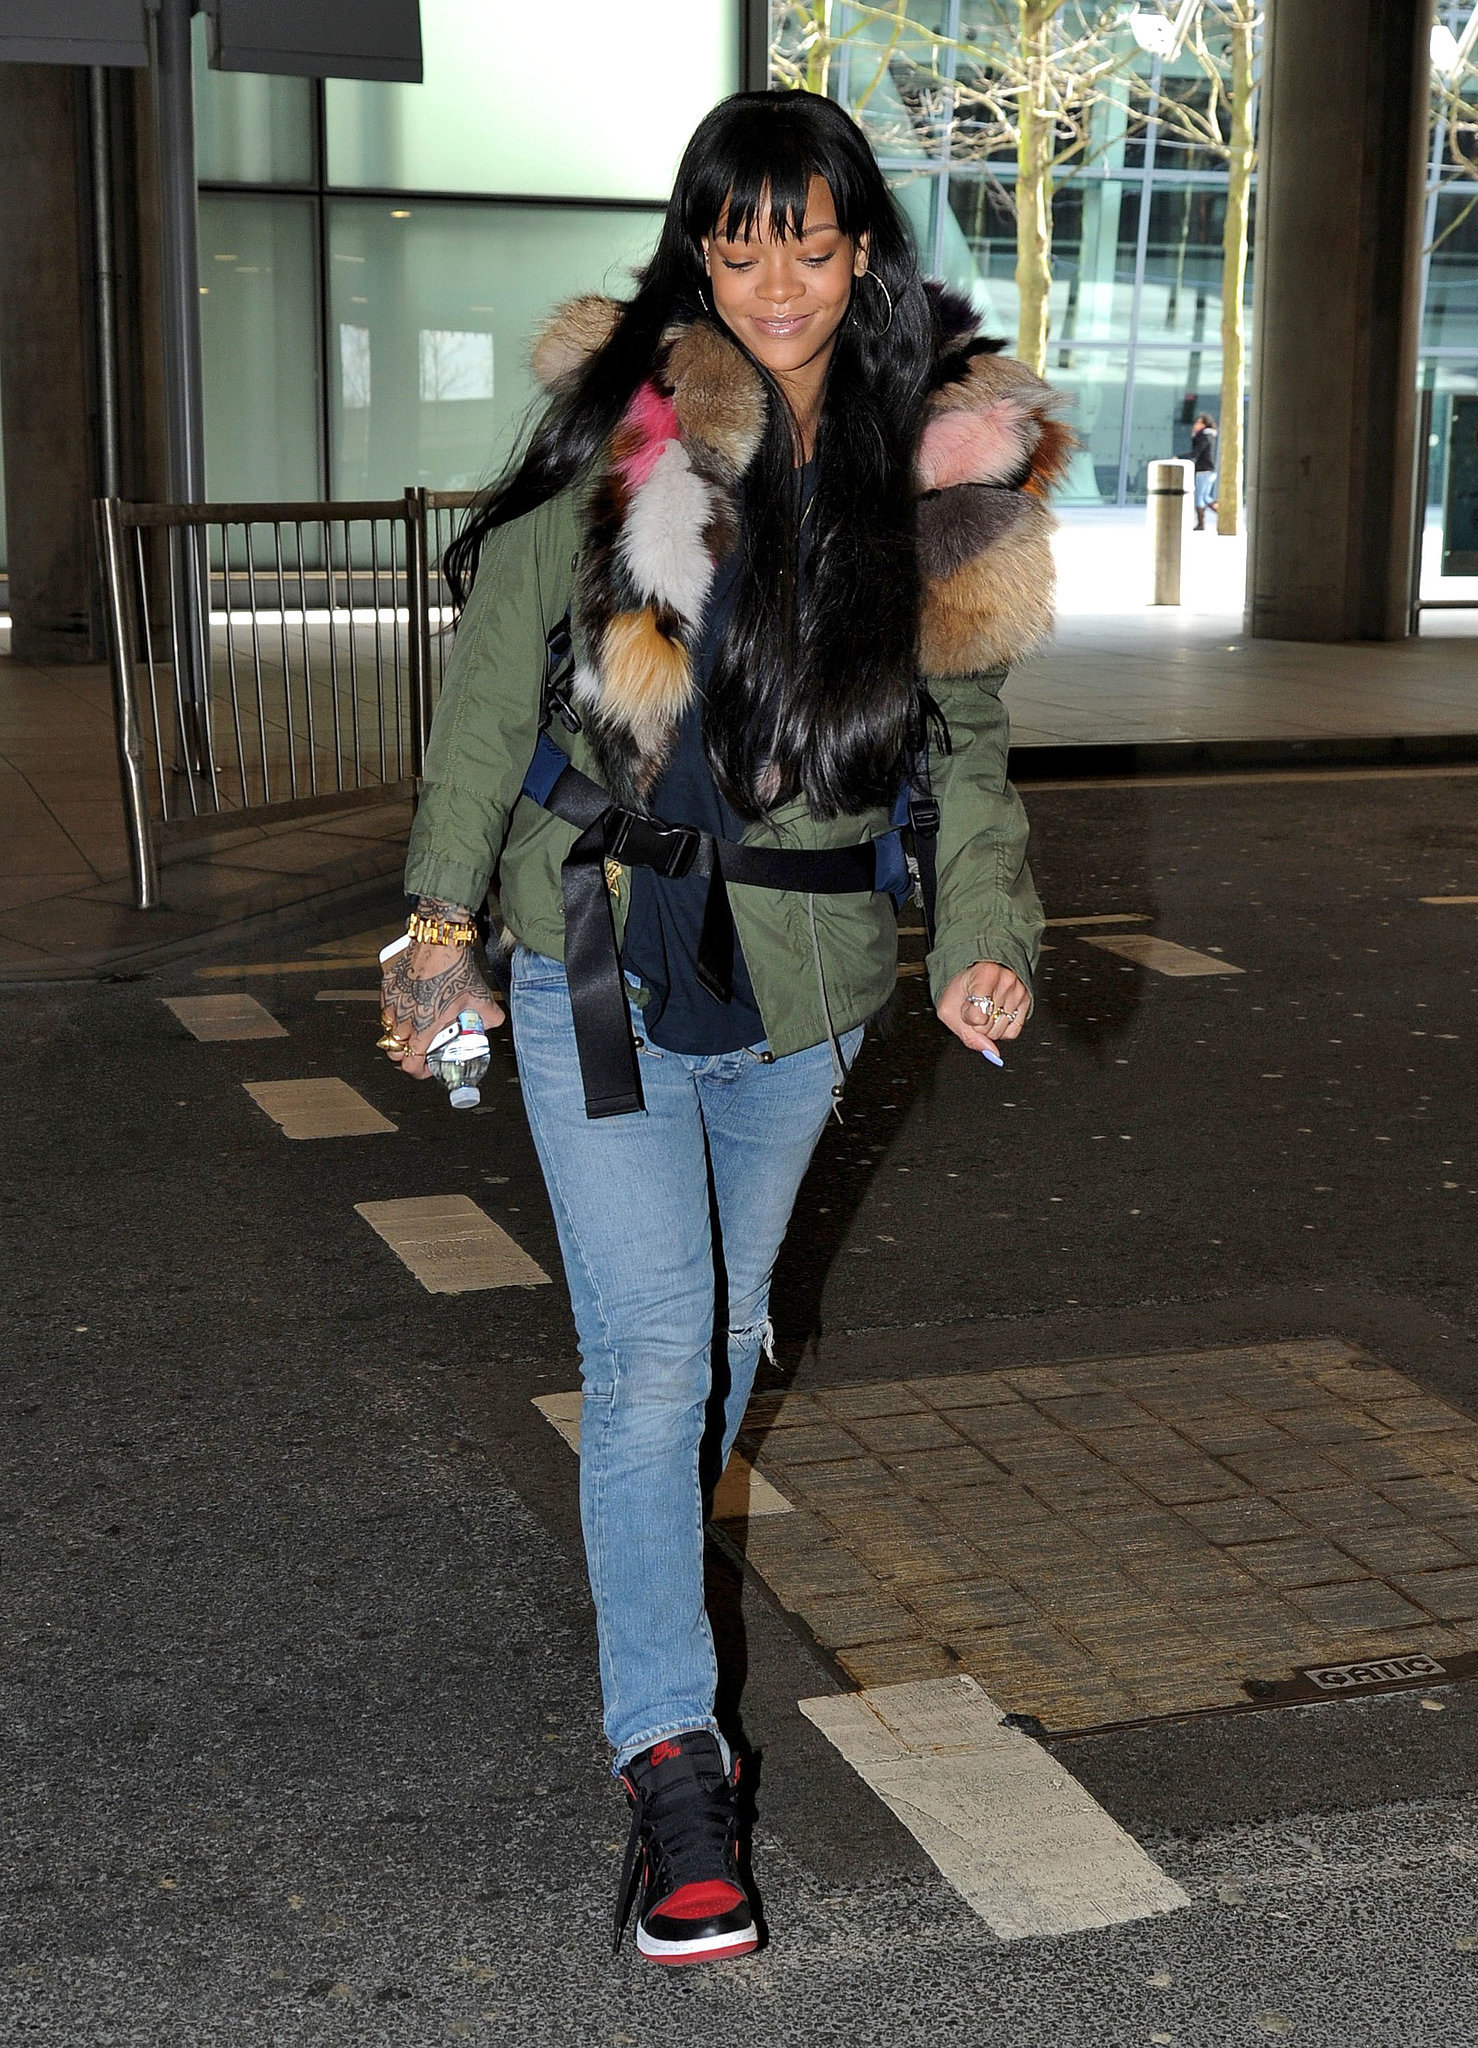 Rihanna arrived in London on Sunday while wearing an eccentric fur jacket.